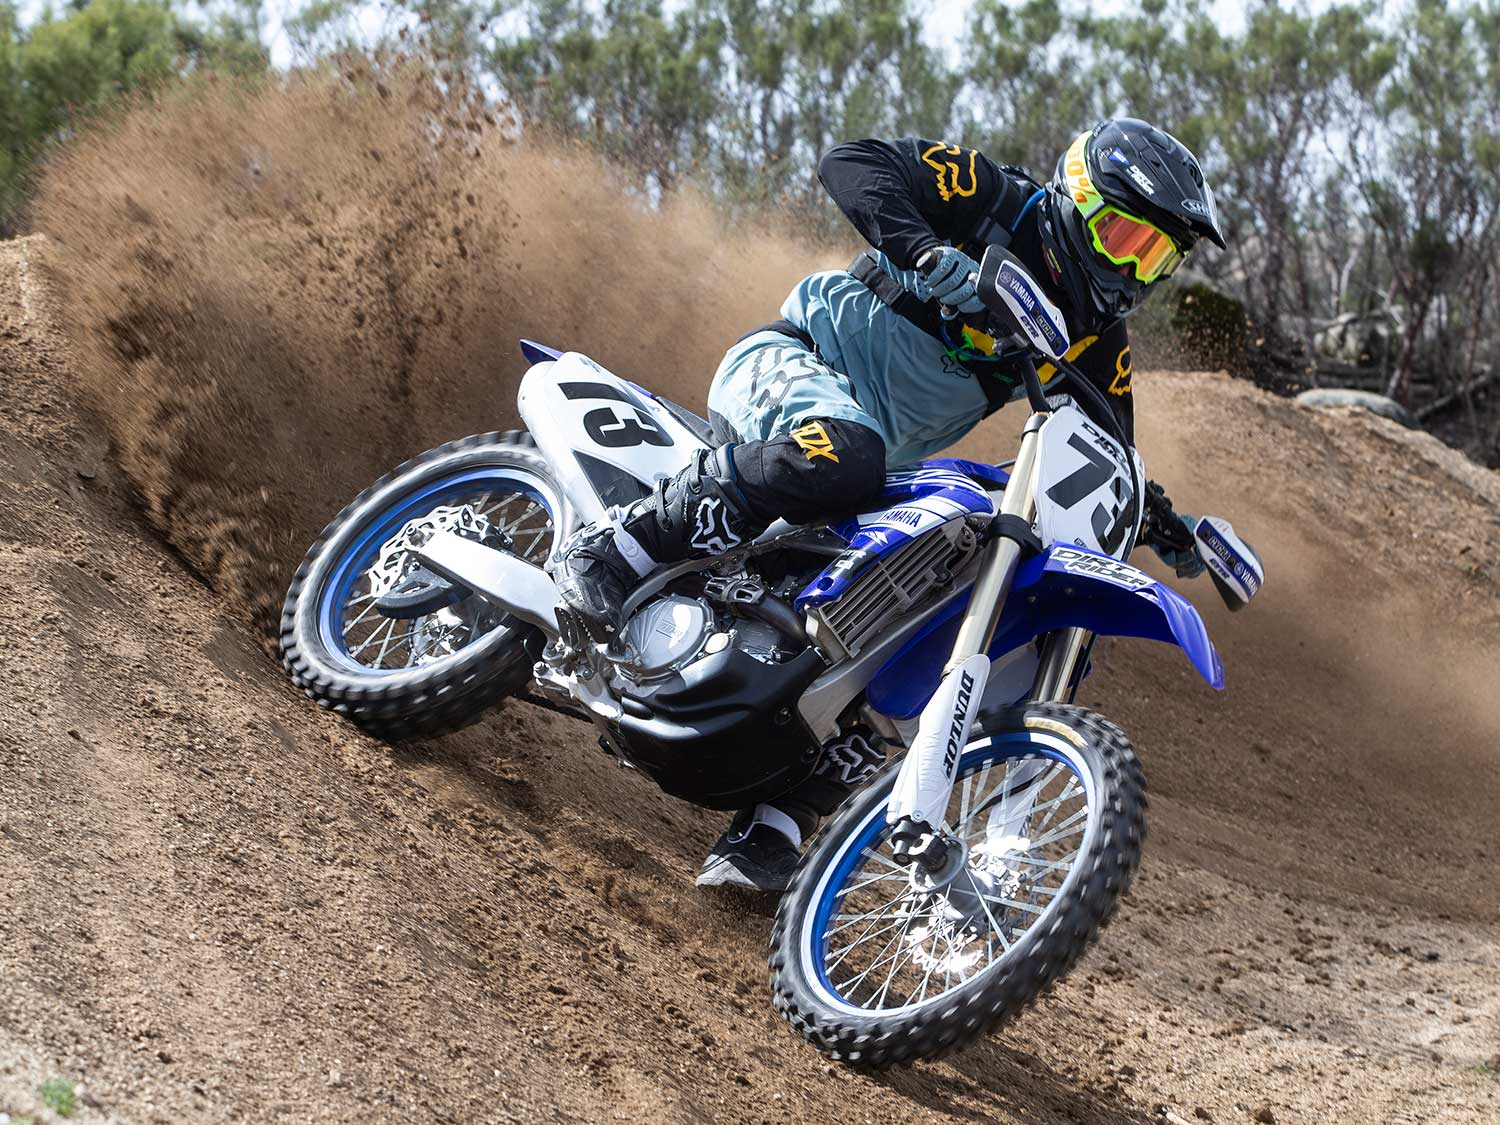 Convince Your Parents To Let You Ride A Dirt Bike | Dirt Rider